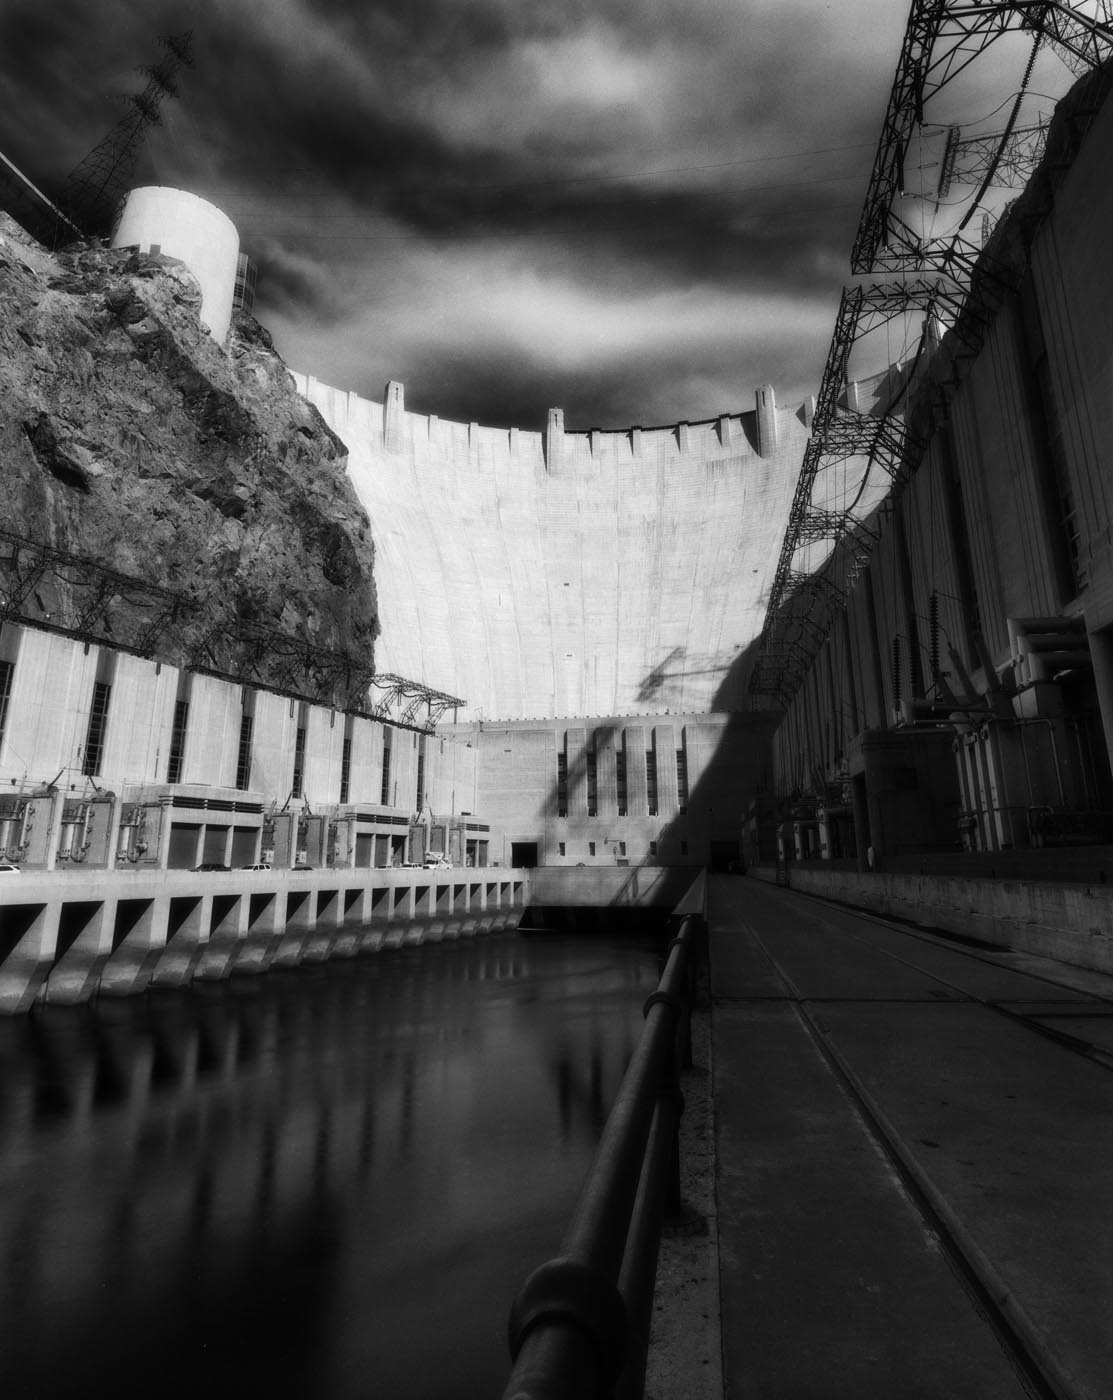 Ramps at the Hoover Dam